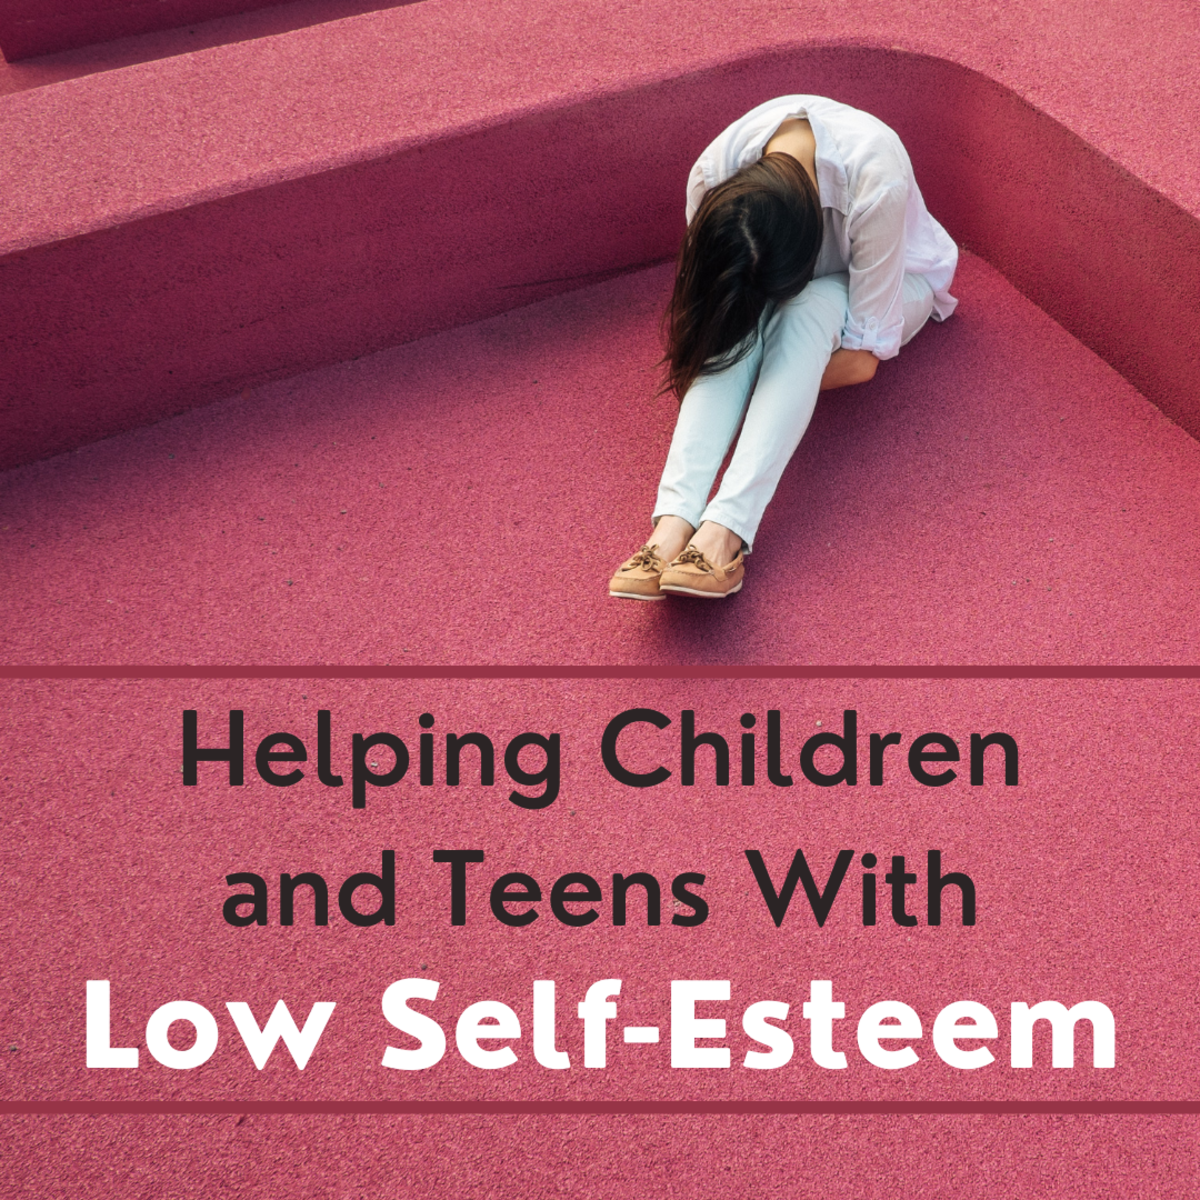 Both parents and teachers play a role in helping their children and students build self-confidence. Learn how to recognise low self-esteem, and find strategies for helping kids overcome it.